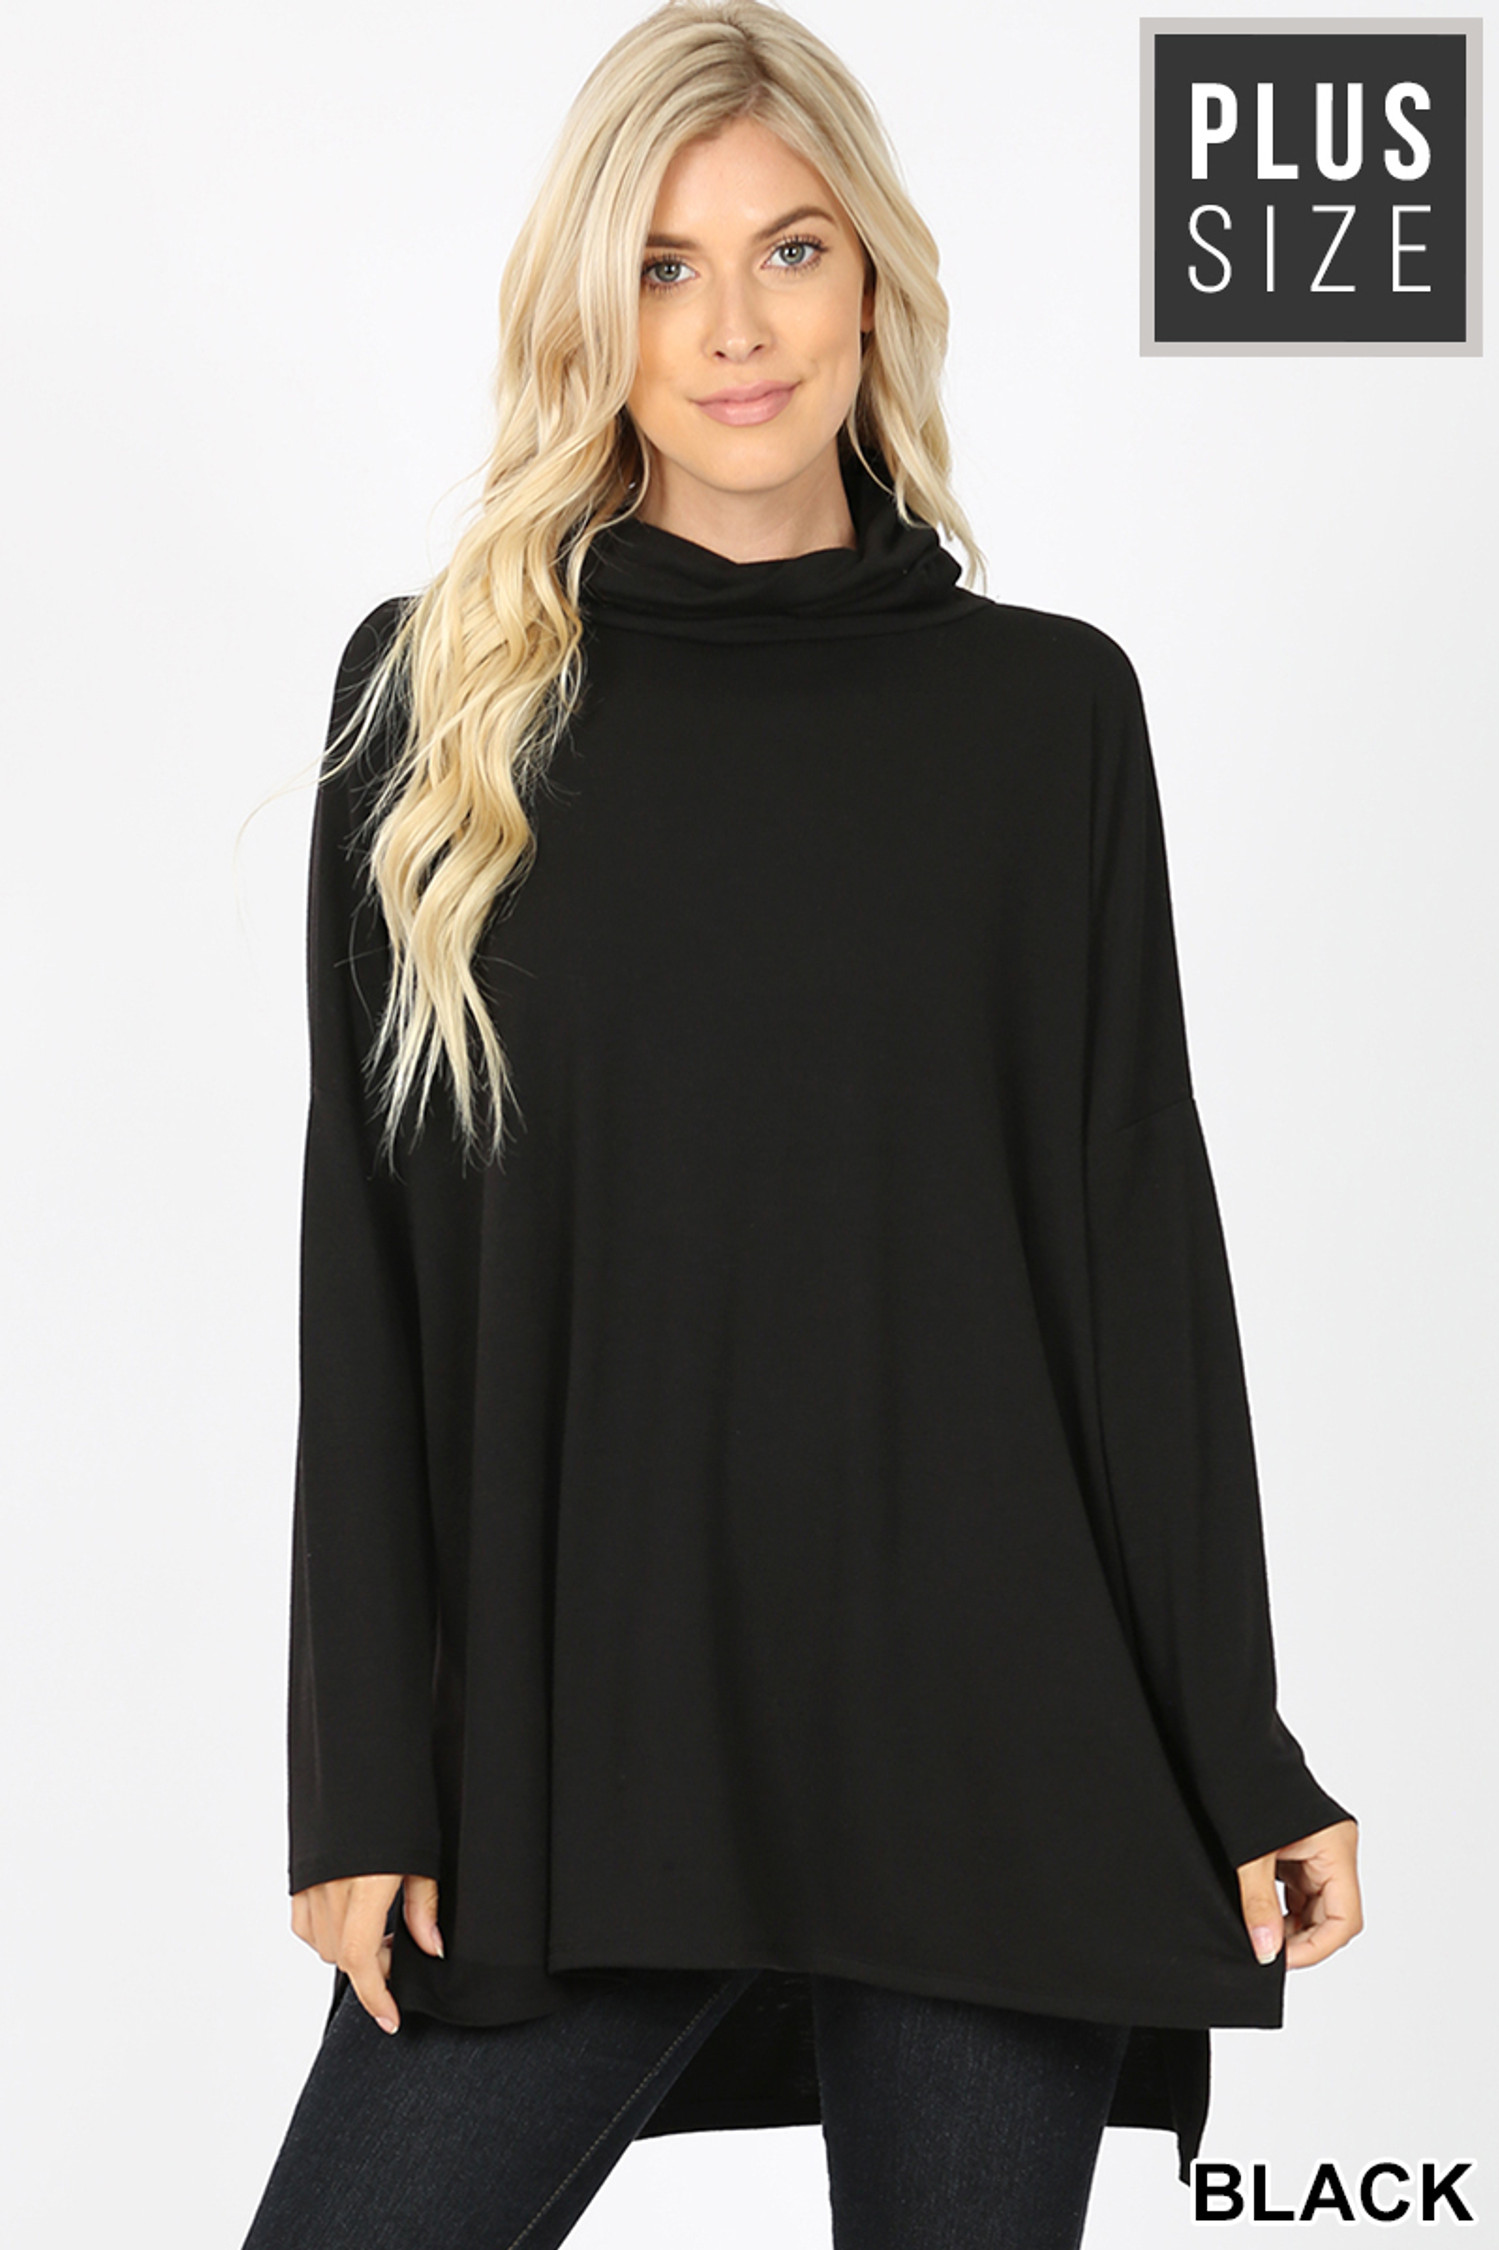 Front image of Black Rayon Cowl Neck Dolman Sleeve Plus Size Top